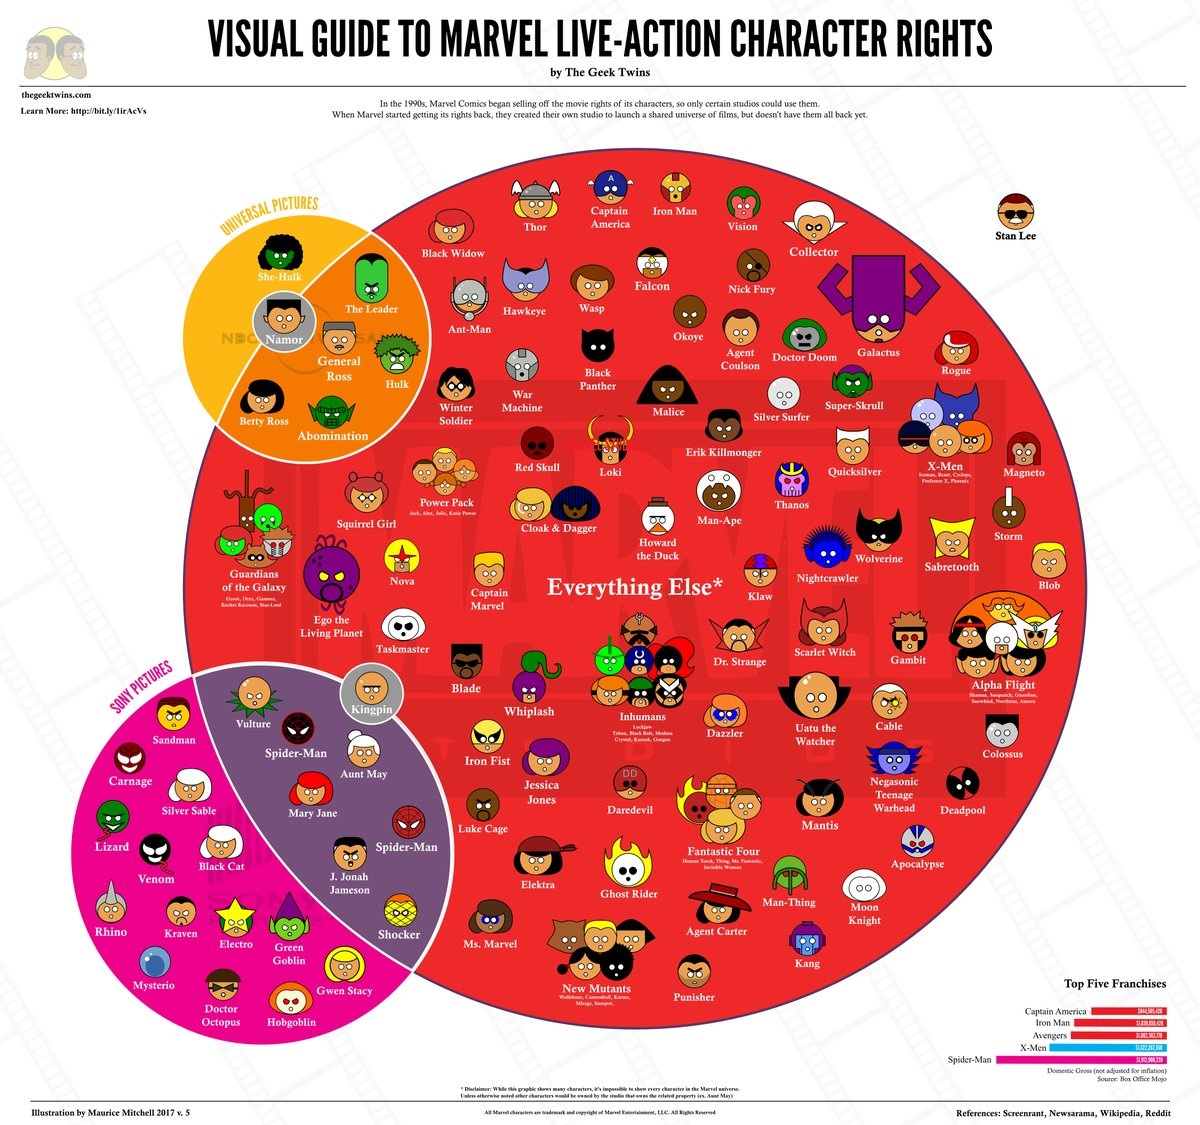 Marvel Movie/Character Rights 2018